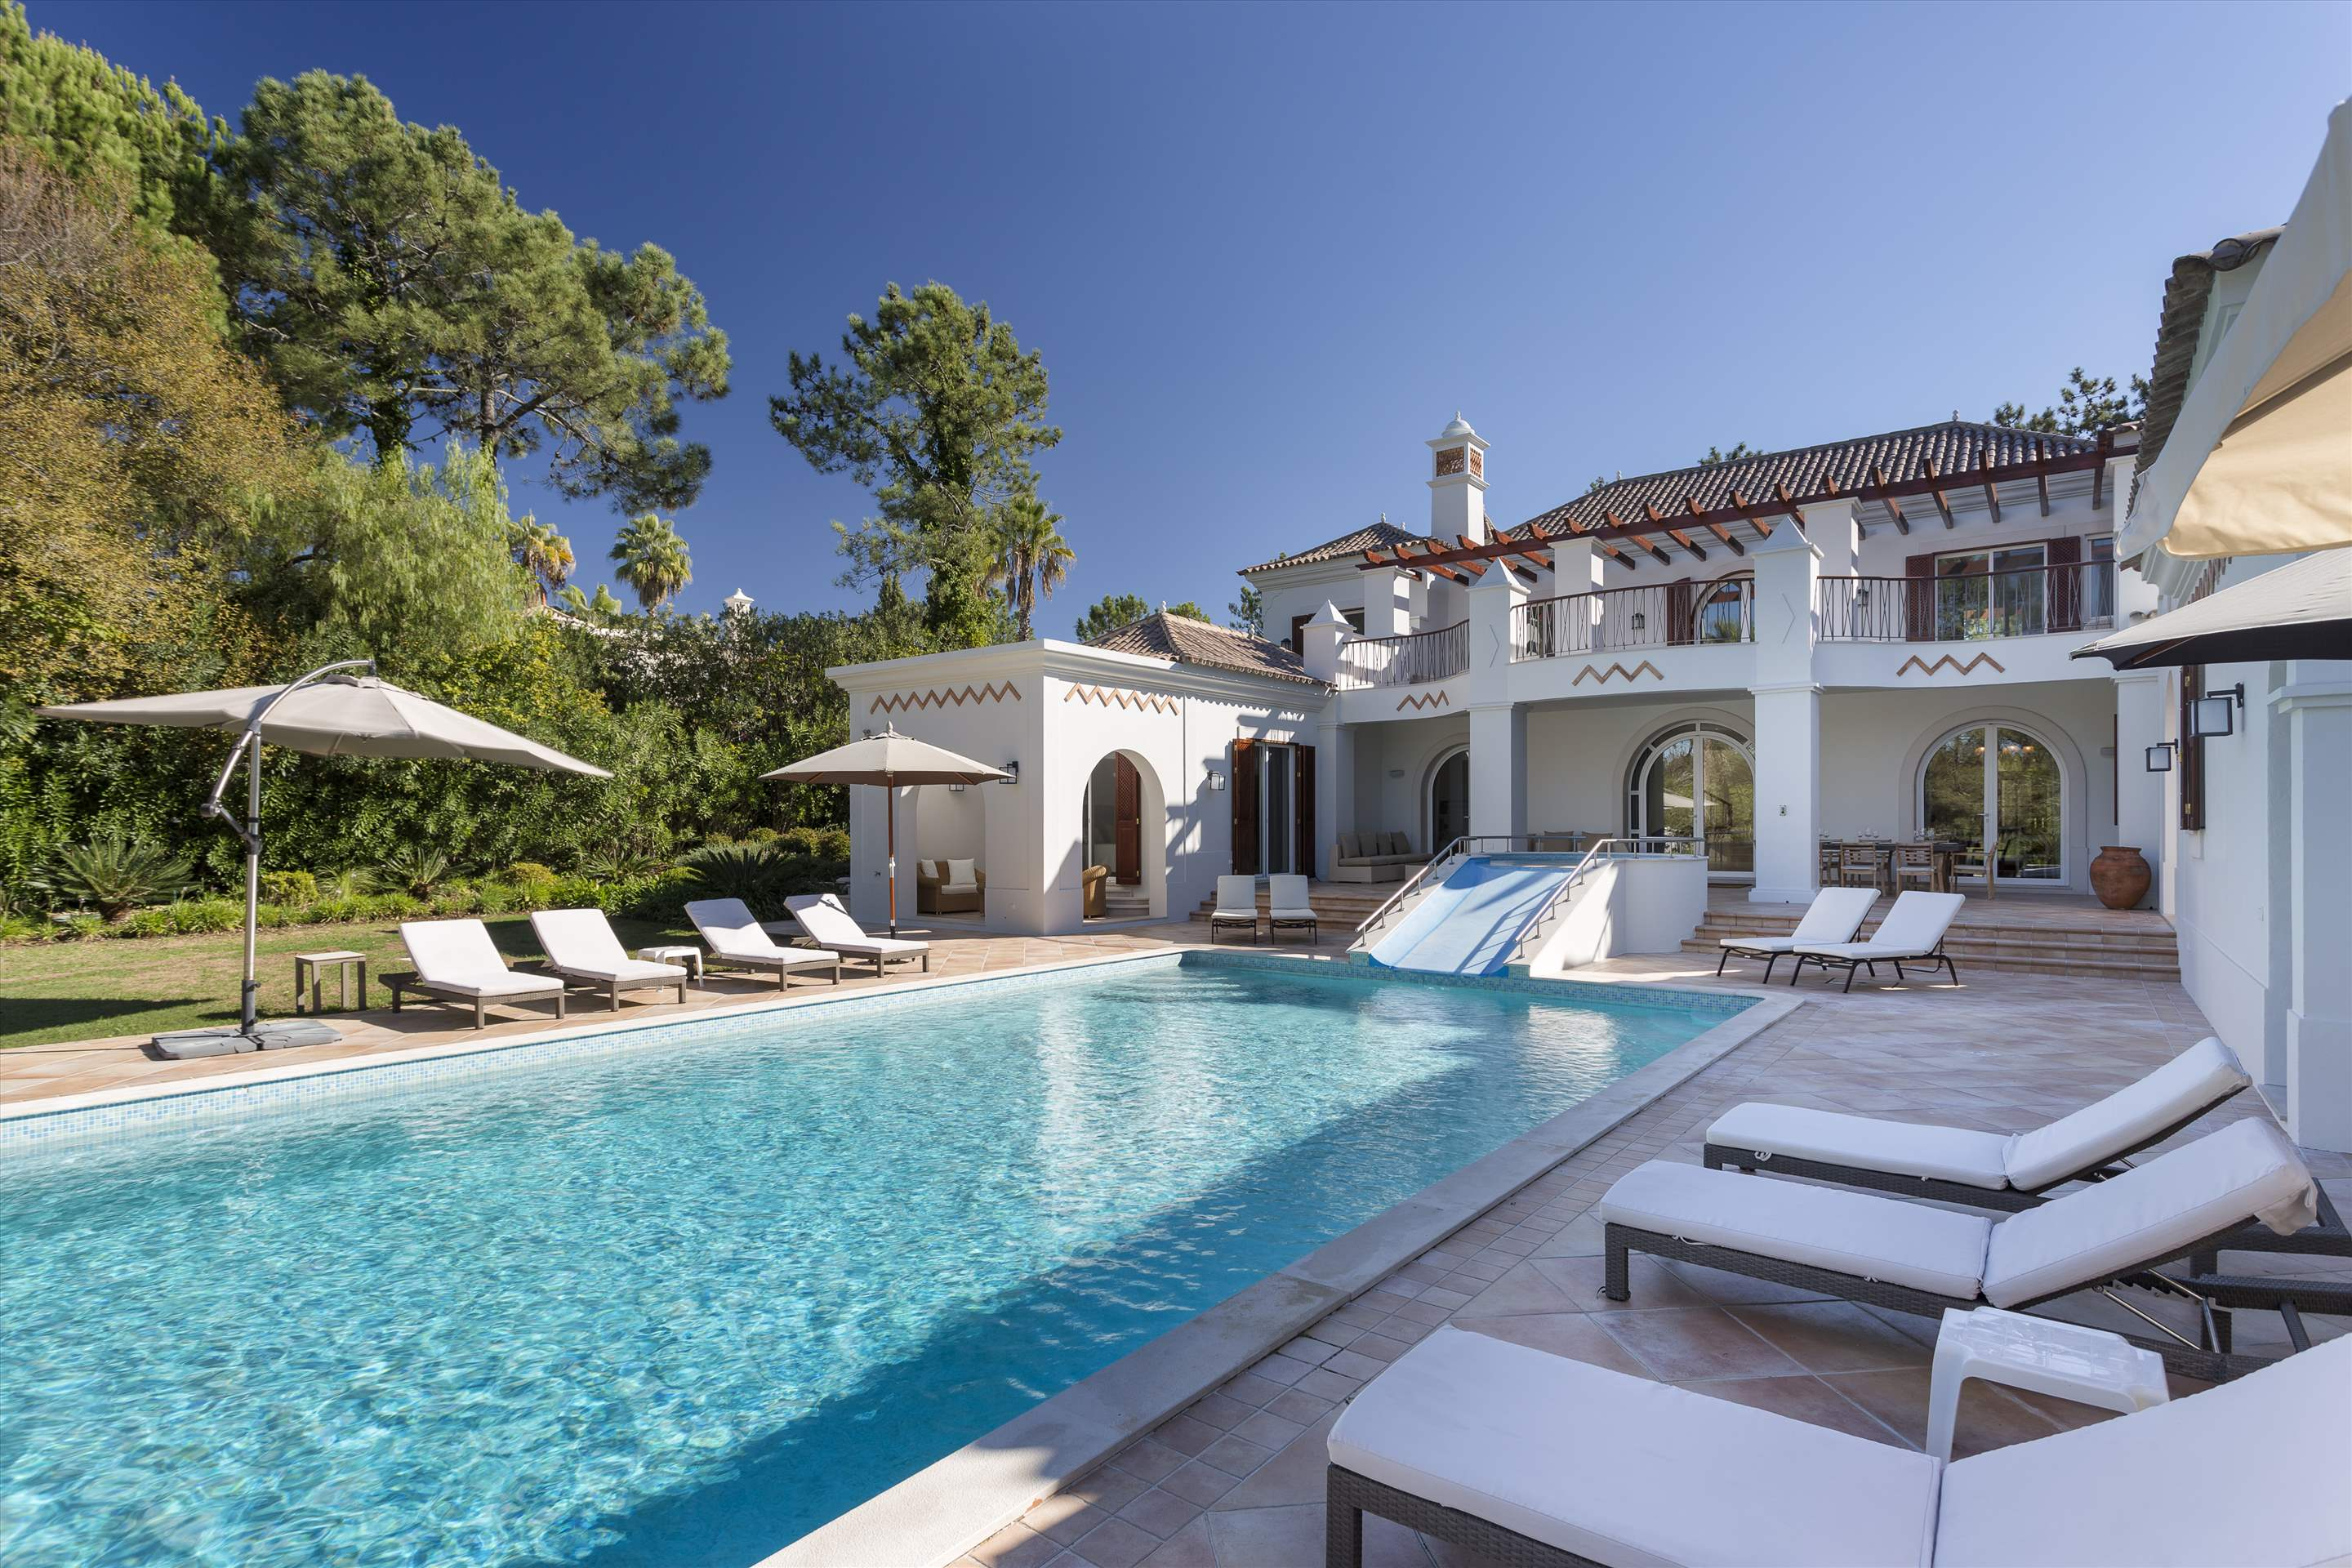 Villa Lantana 2, Main house & Annexe, 6 bedrooms, 6 bedroom villa in Quinta do Lago, Algarve Photo #7